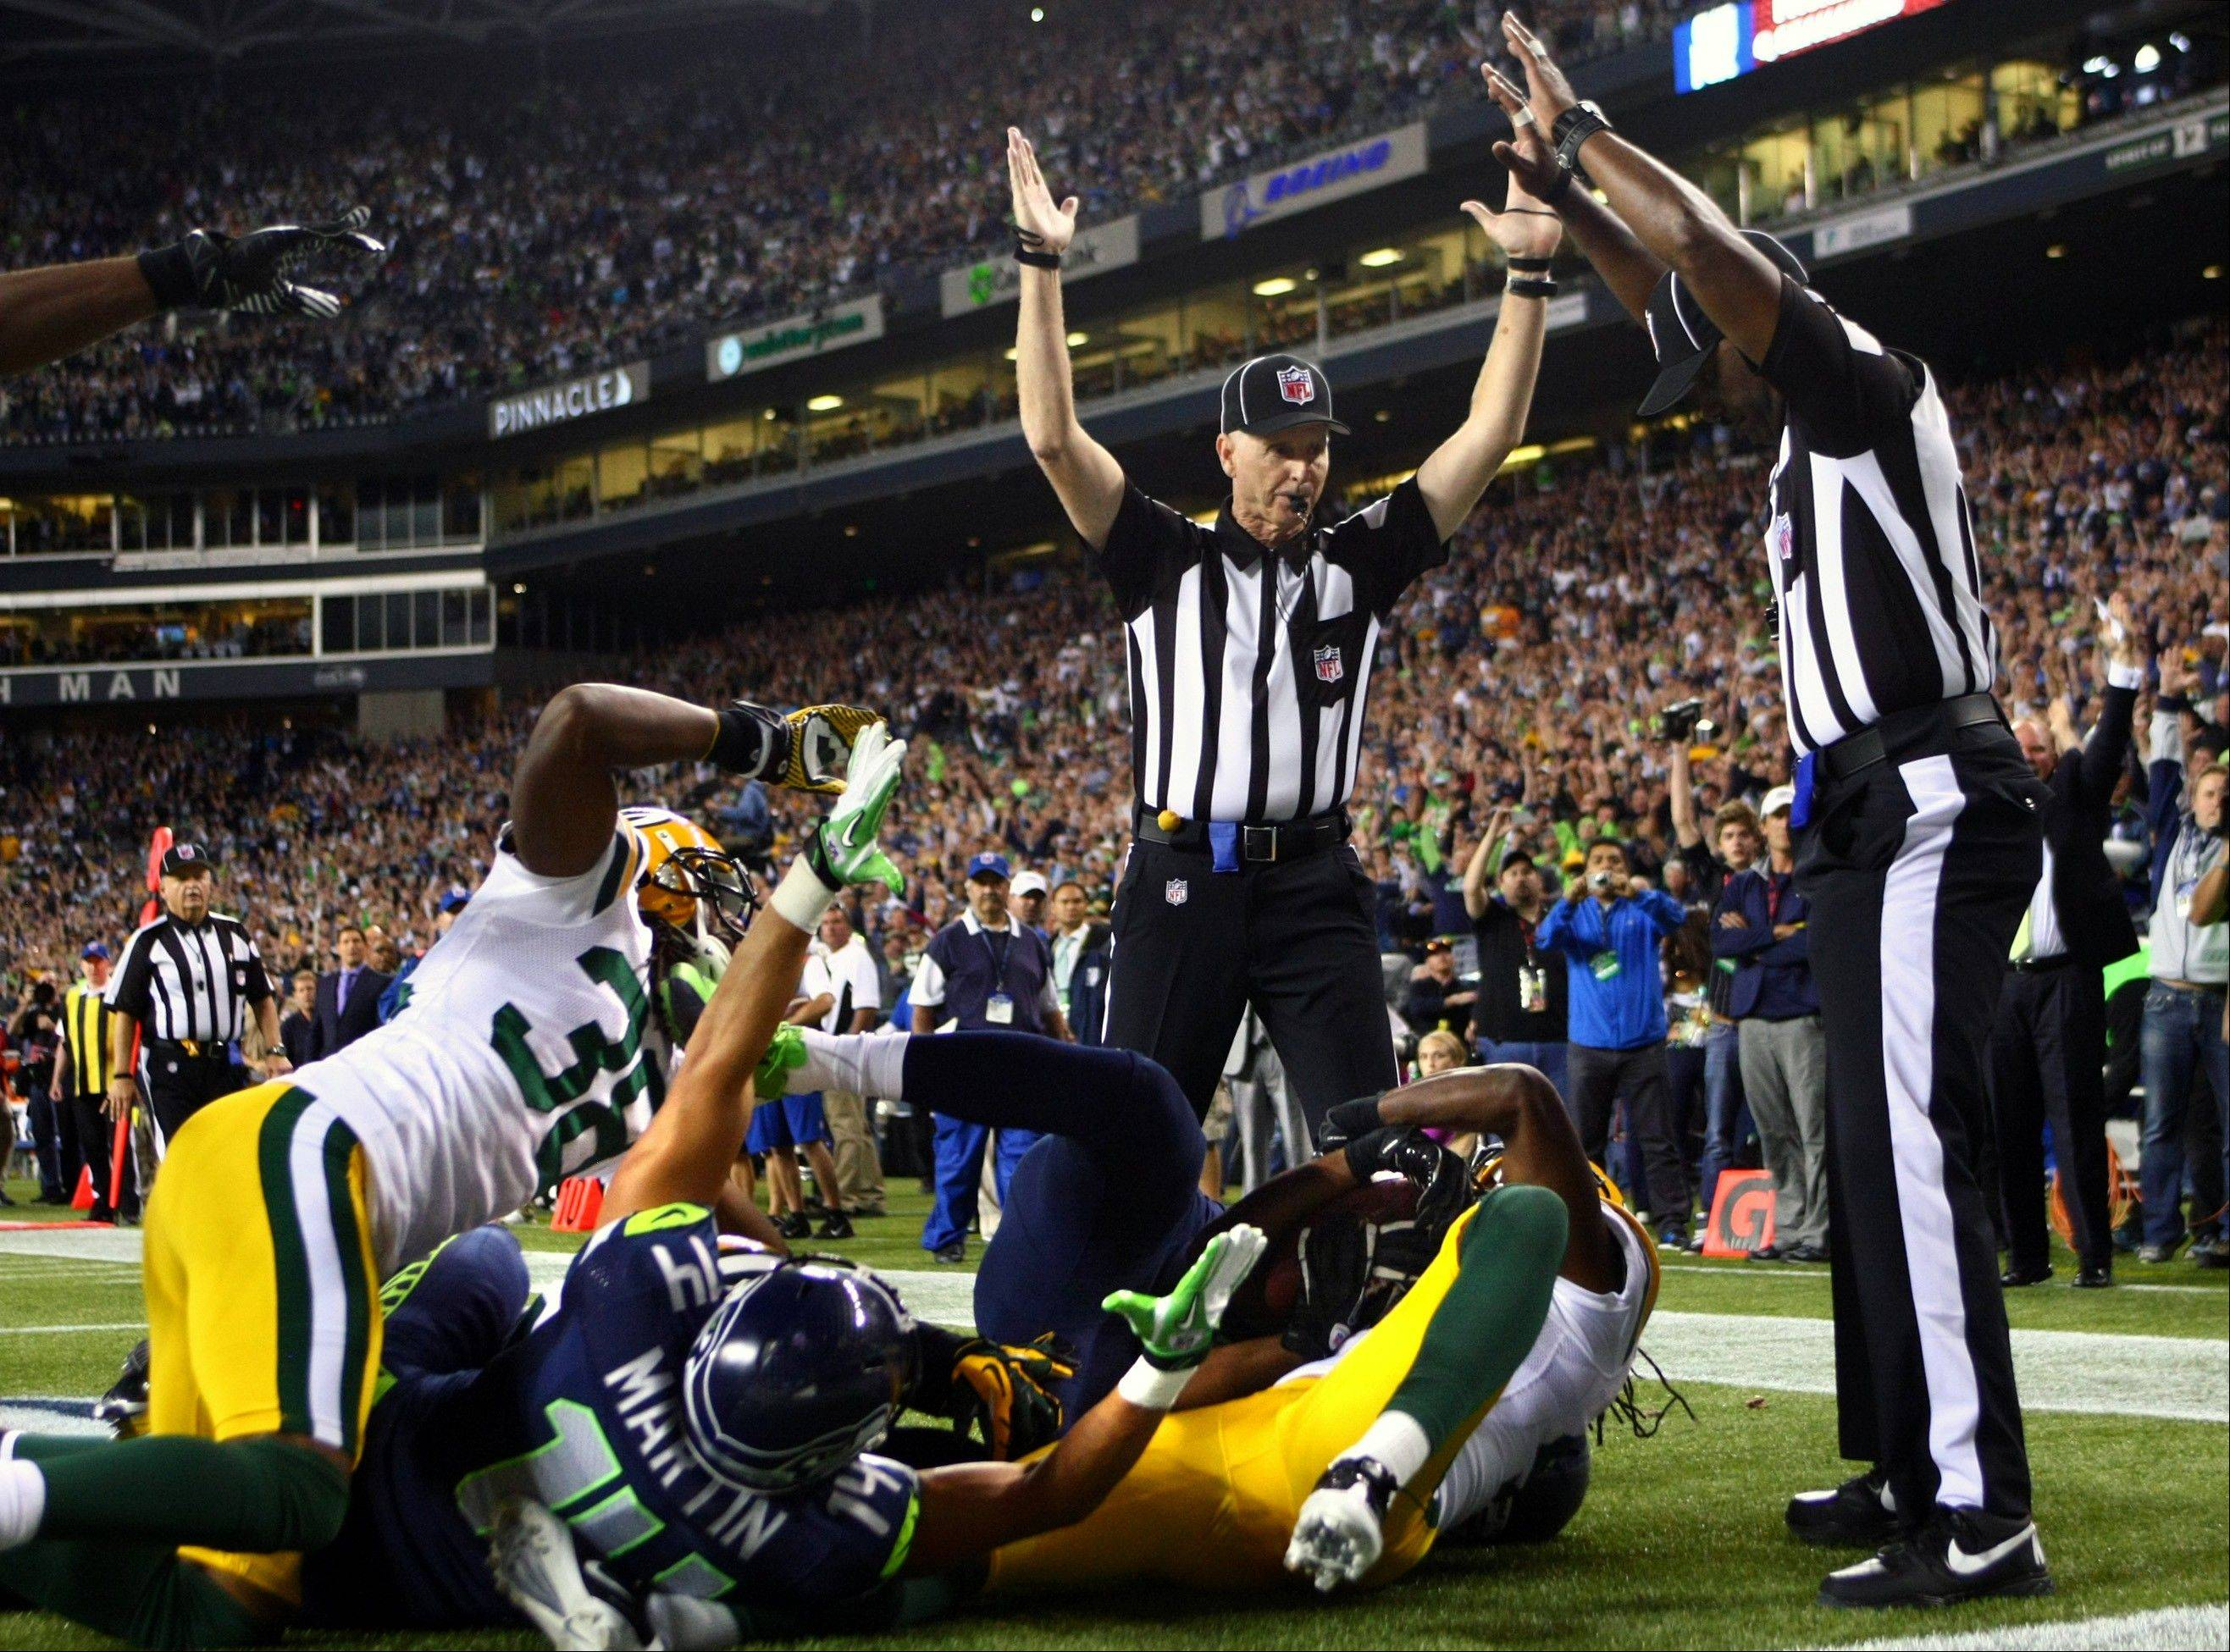 In NFL ref woes, key role of expertise spotlighted